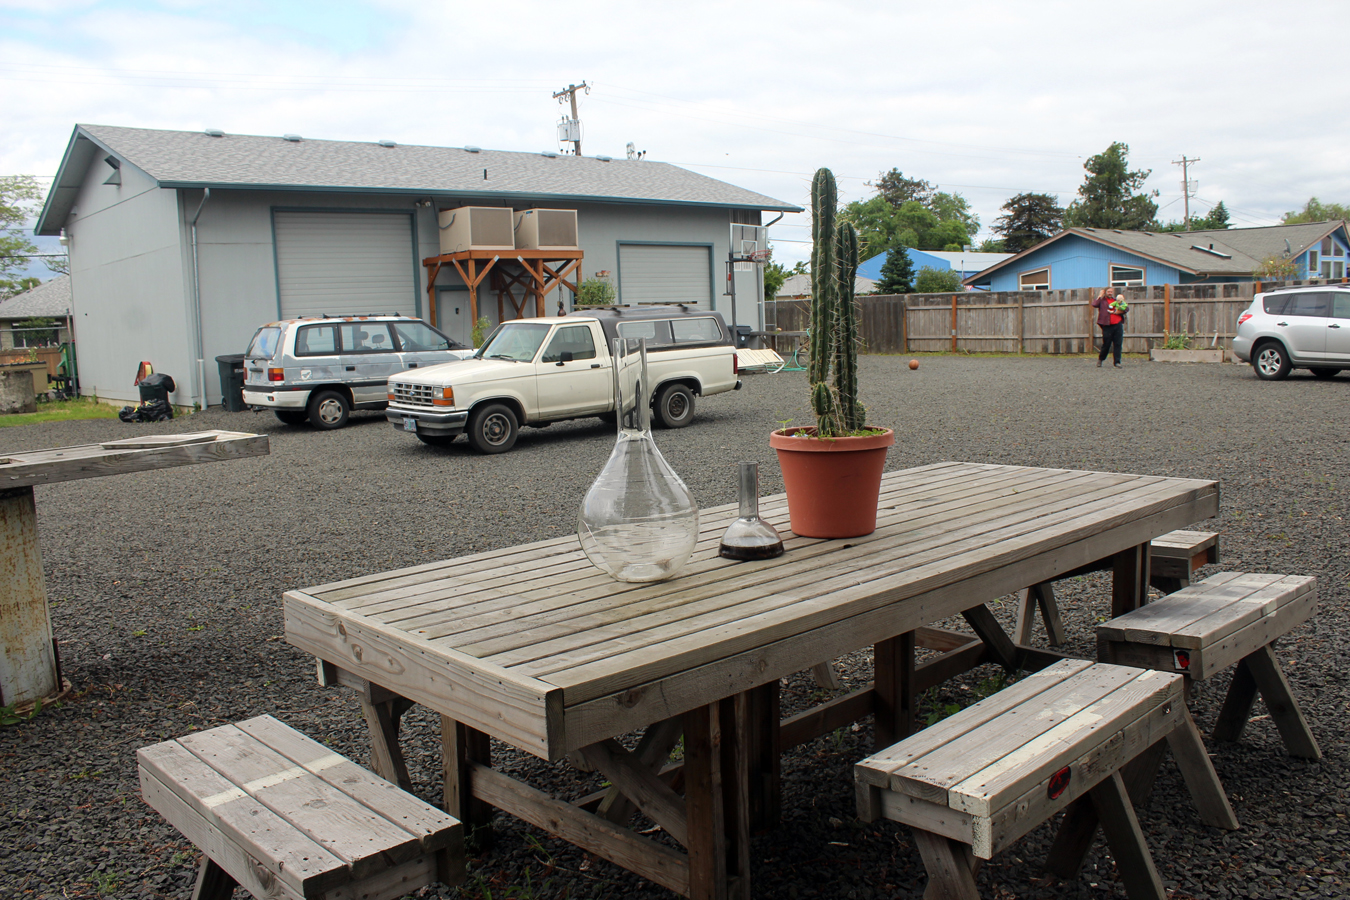 Picnic Table and Outdoor Area